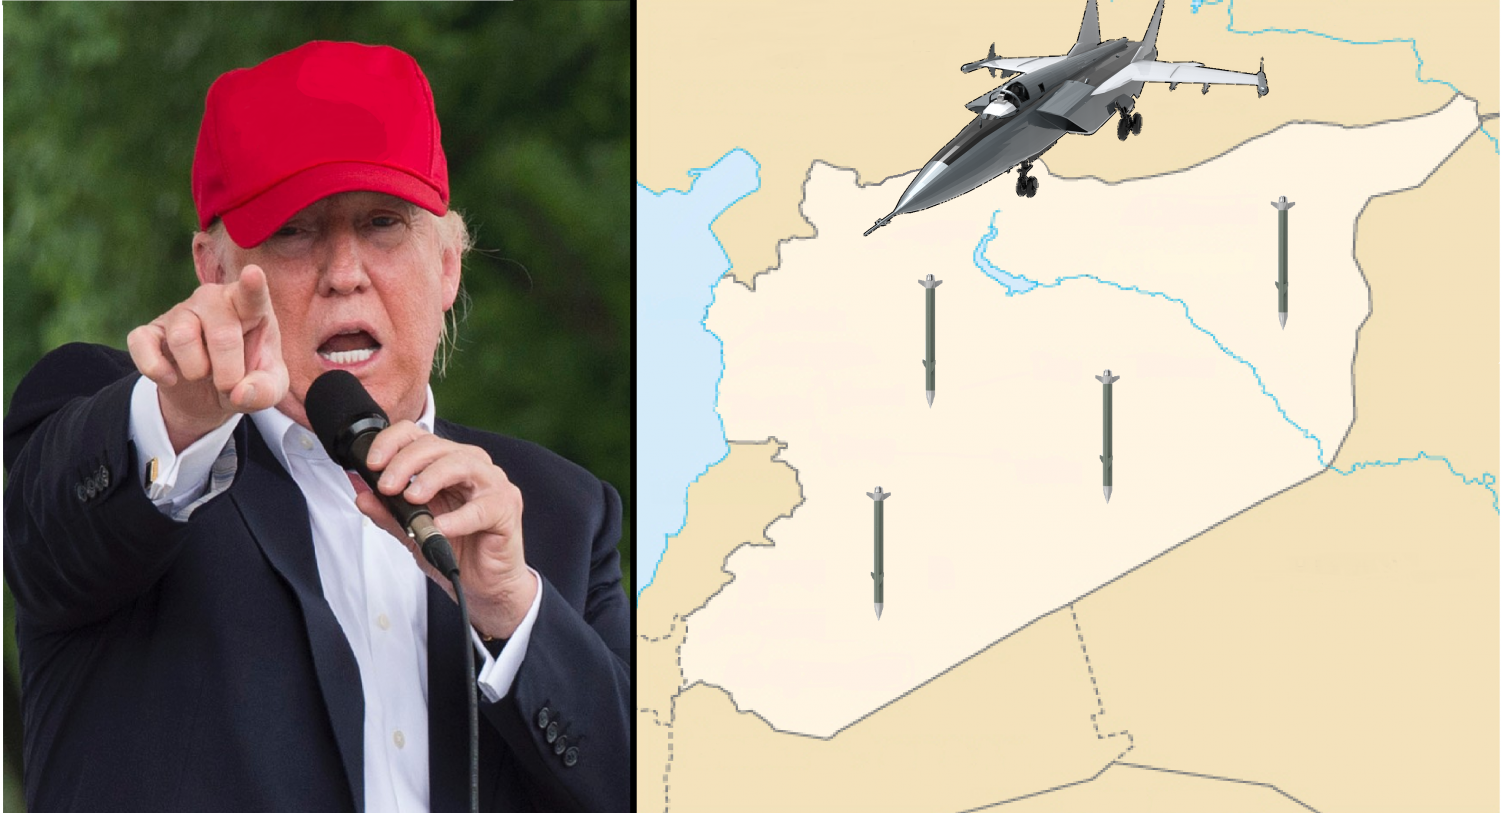 President Trump has declared that there will be consequences for the Syrian government's actions, but what response is appropriate?